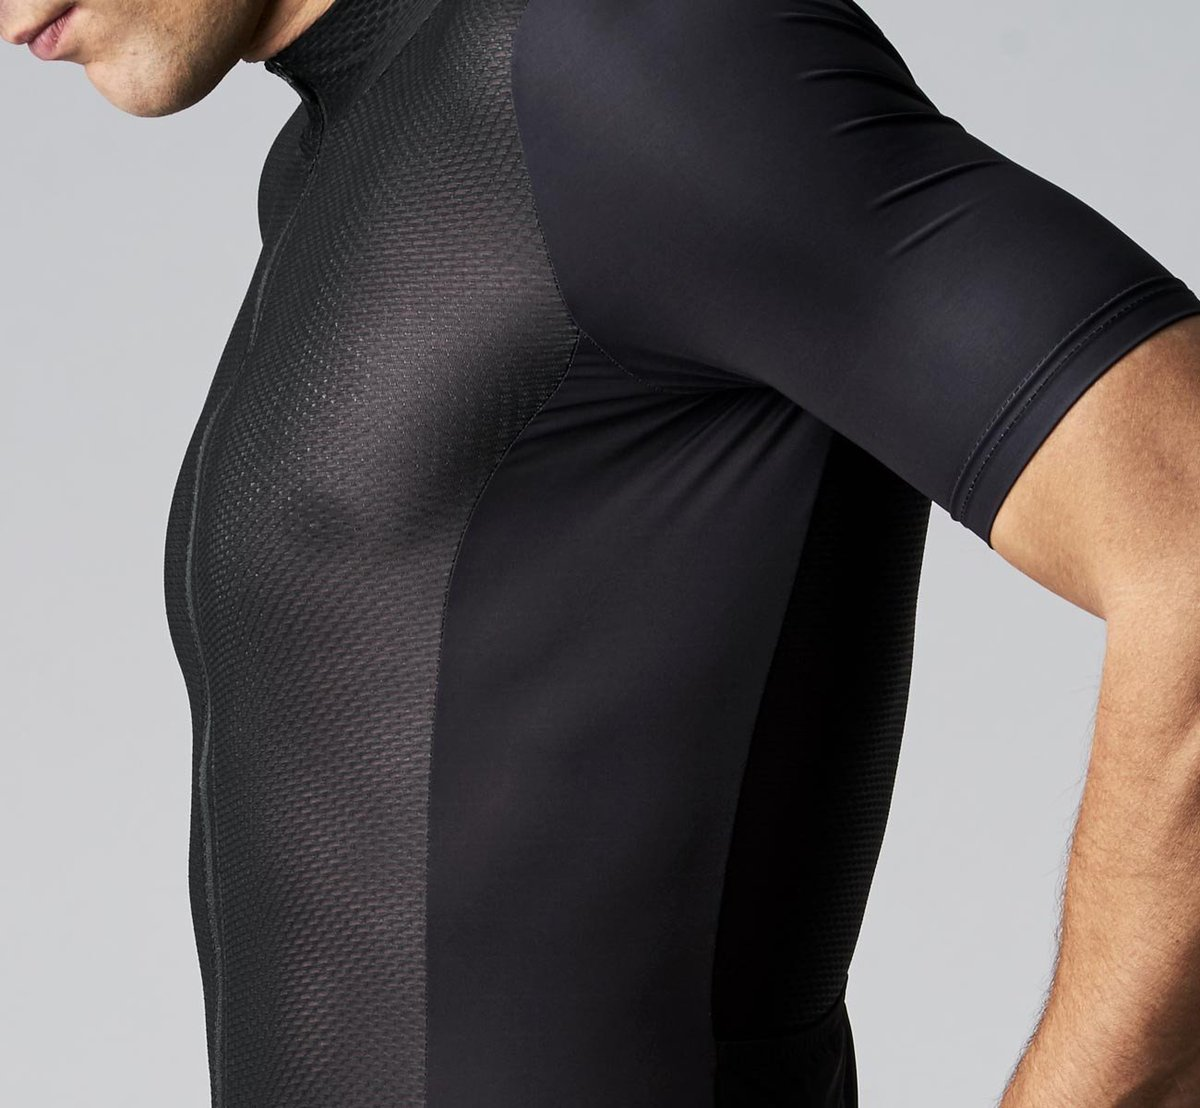 La Passione Cycling Couture® on Twitter